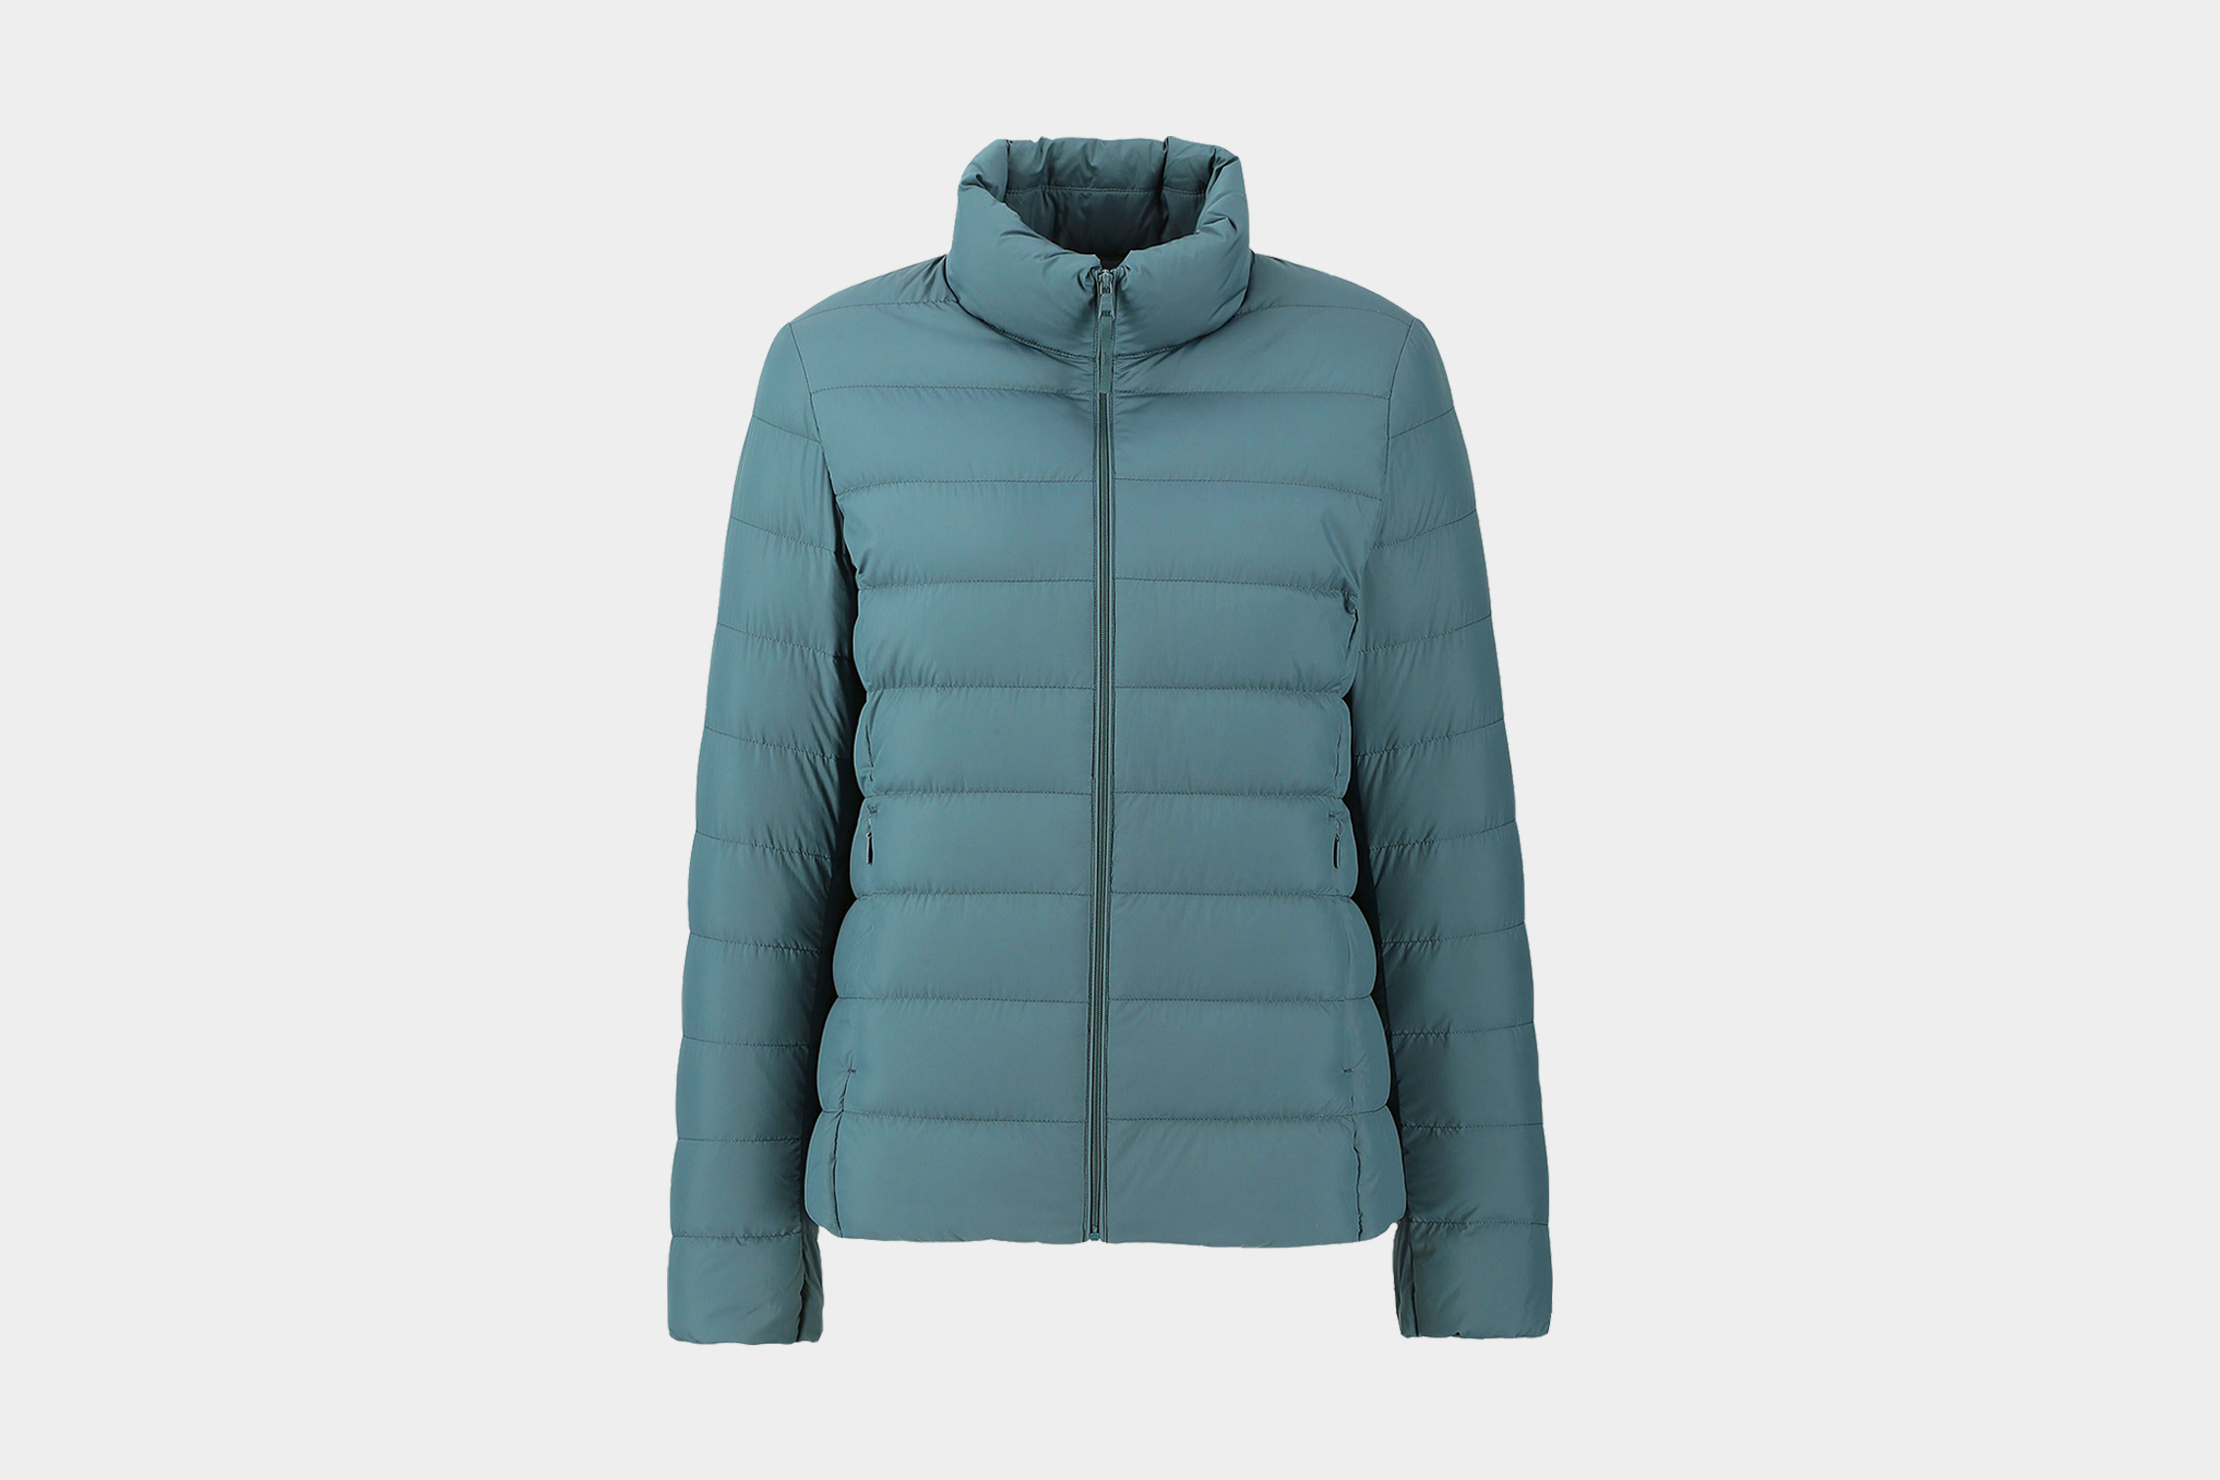 8b2df372fd3 Uniqlo Ultra Light Down Jacket Review | Pack Hacker